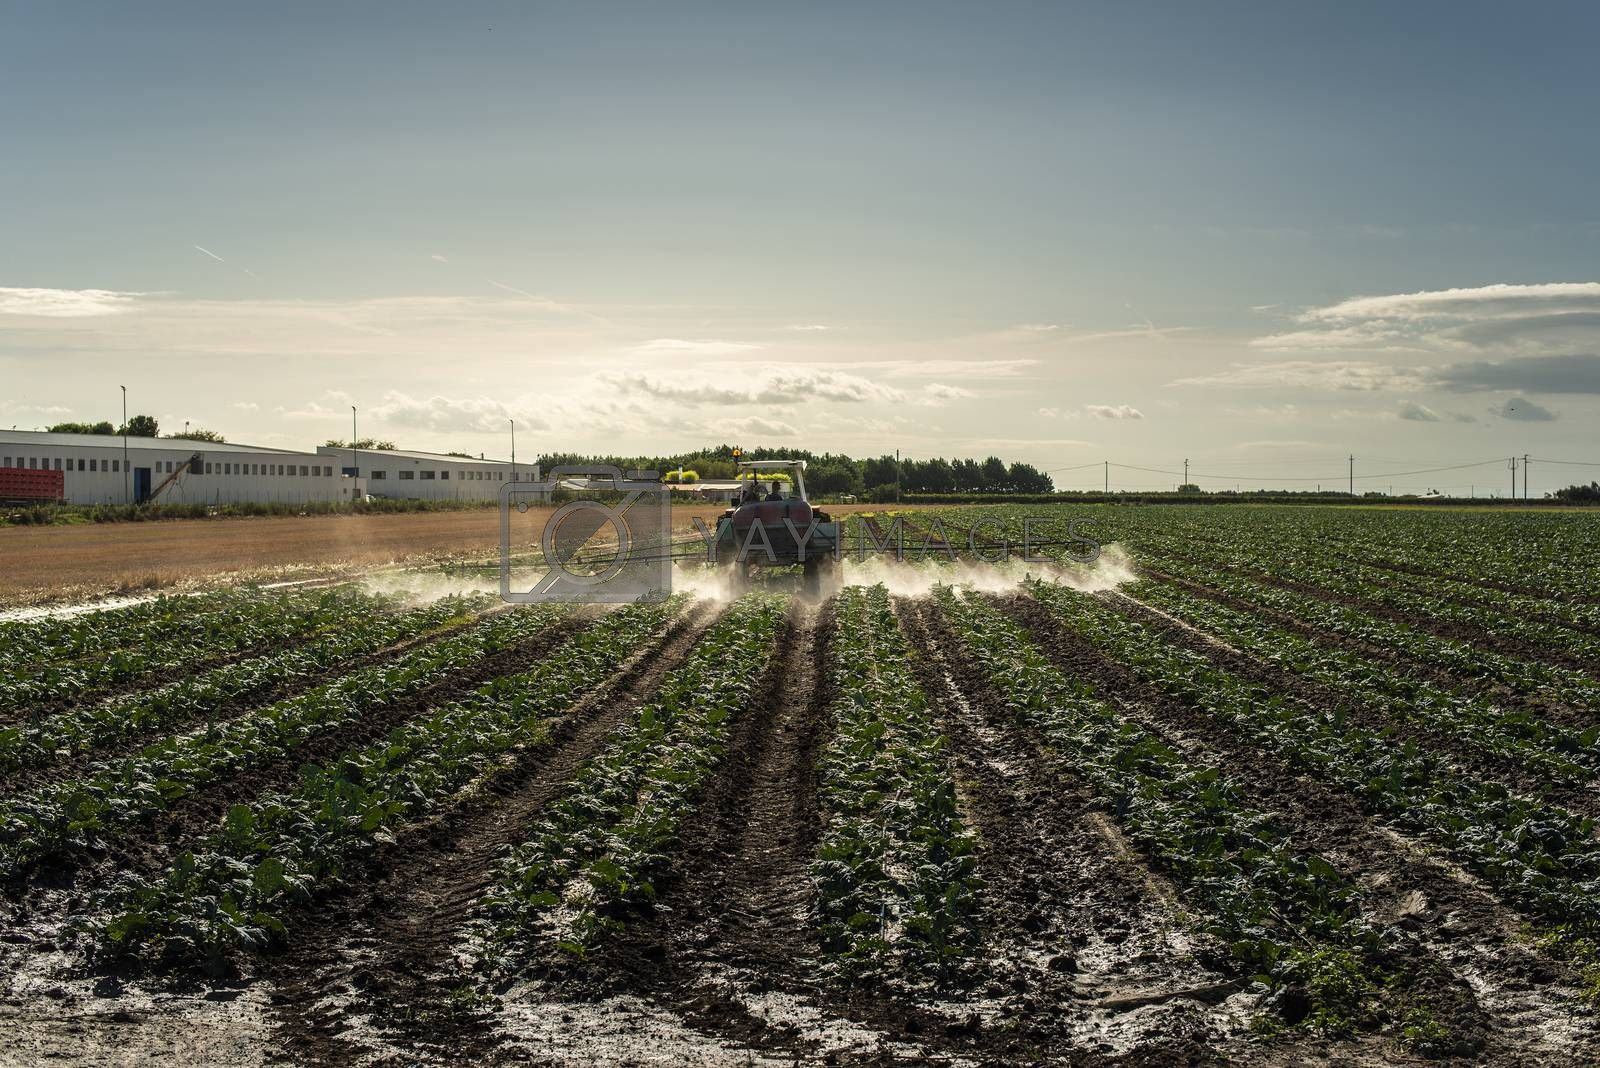 An agricultural tractor sprays plants with chemicals. Protection of plants by using pesticides. Sunset on the field.